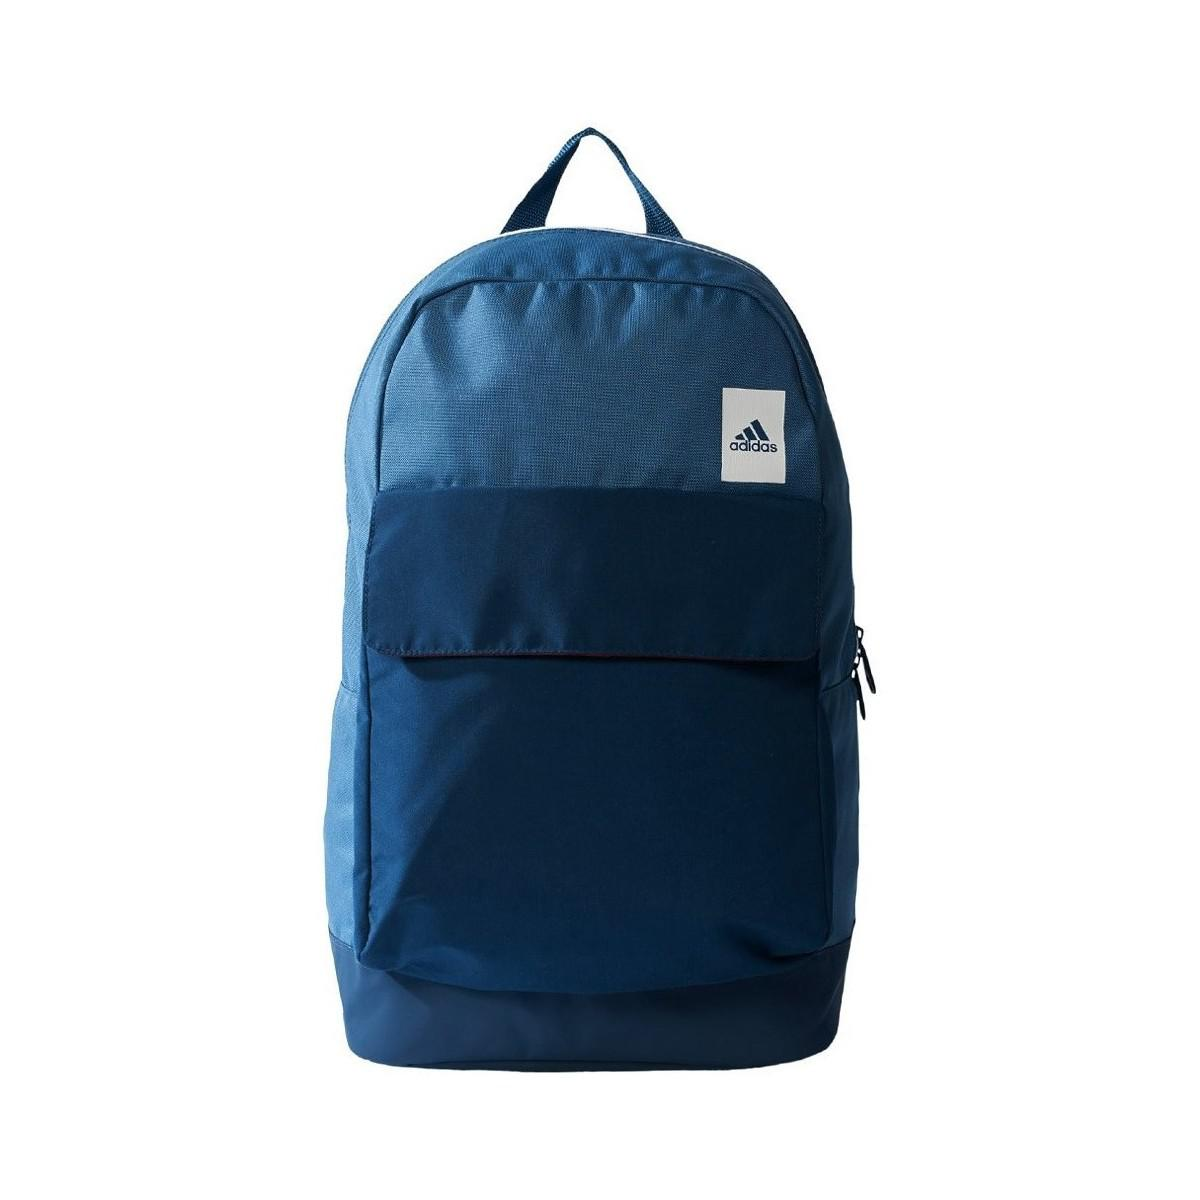 987937cf9a9a Adidas Good Backpack Solid Men s Backpack In Blue in Blue for Men - Lyst